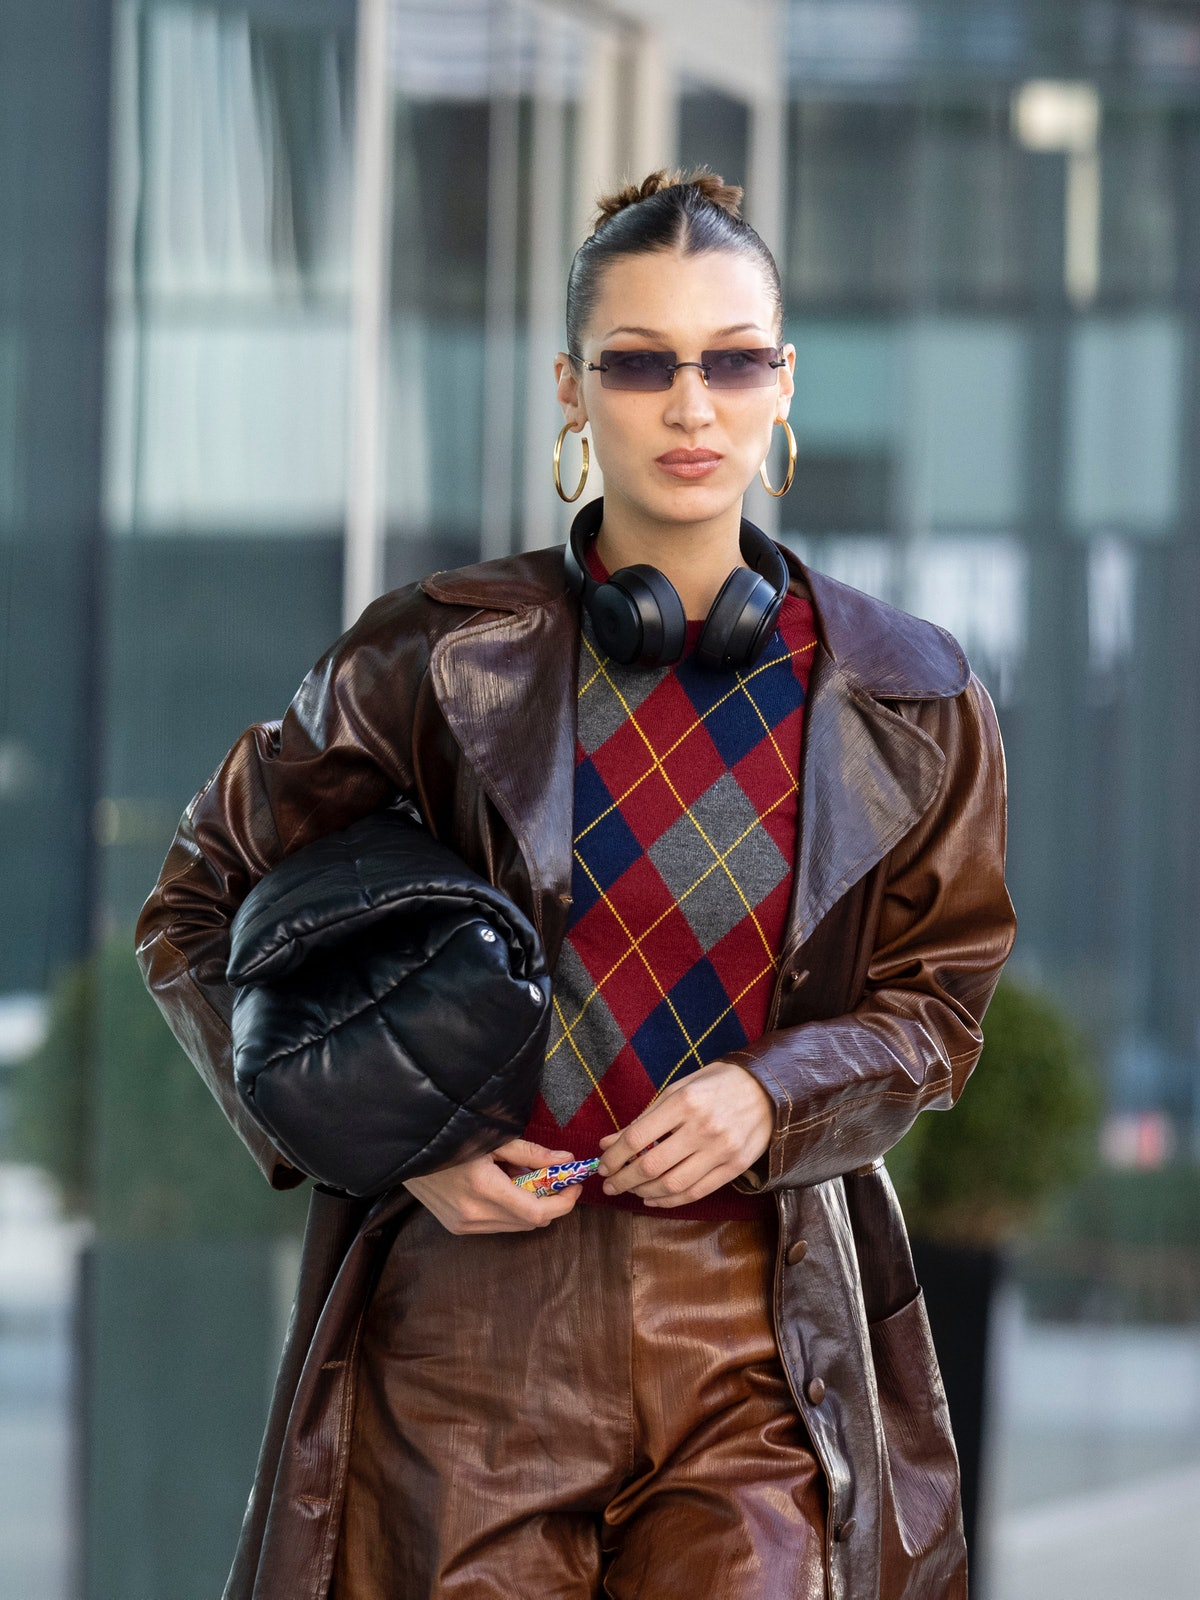 MILAN, ITALY - FEBRUARY 20: Bella Hadid is seen during Milan Fashion Week Fall/Winter 2020-2021 on February 20, 2020 in Milan, Italy. (Photo by Arnold Jerocki/Getty Images)